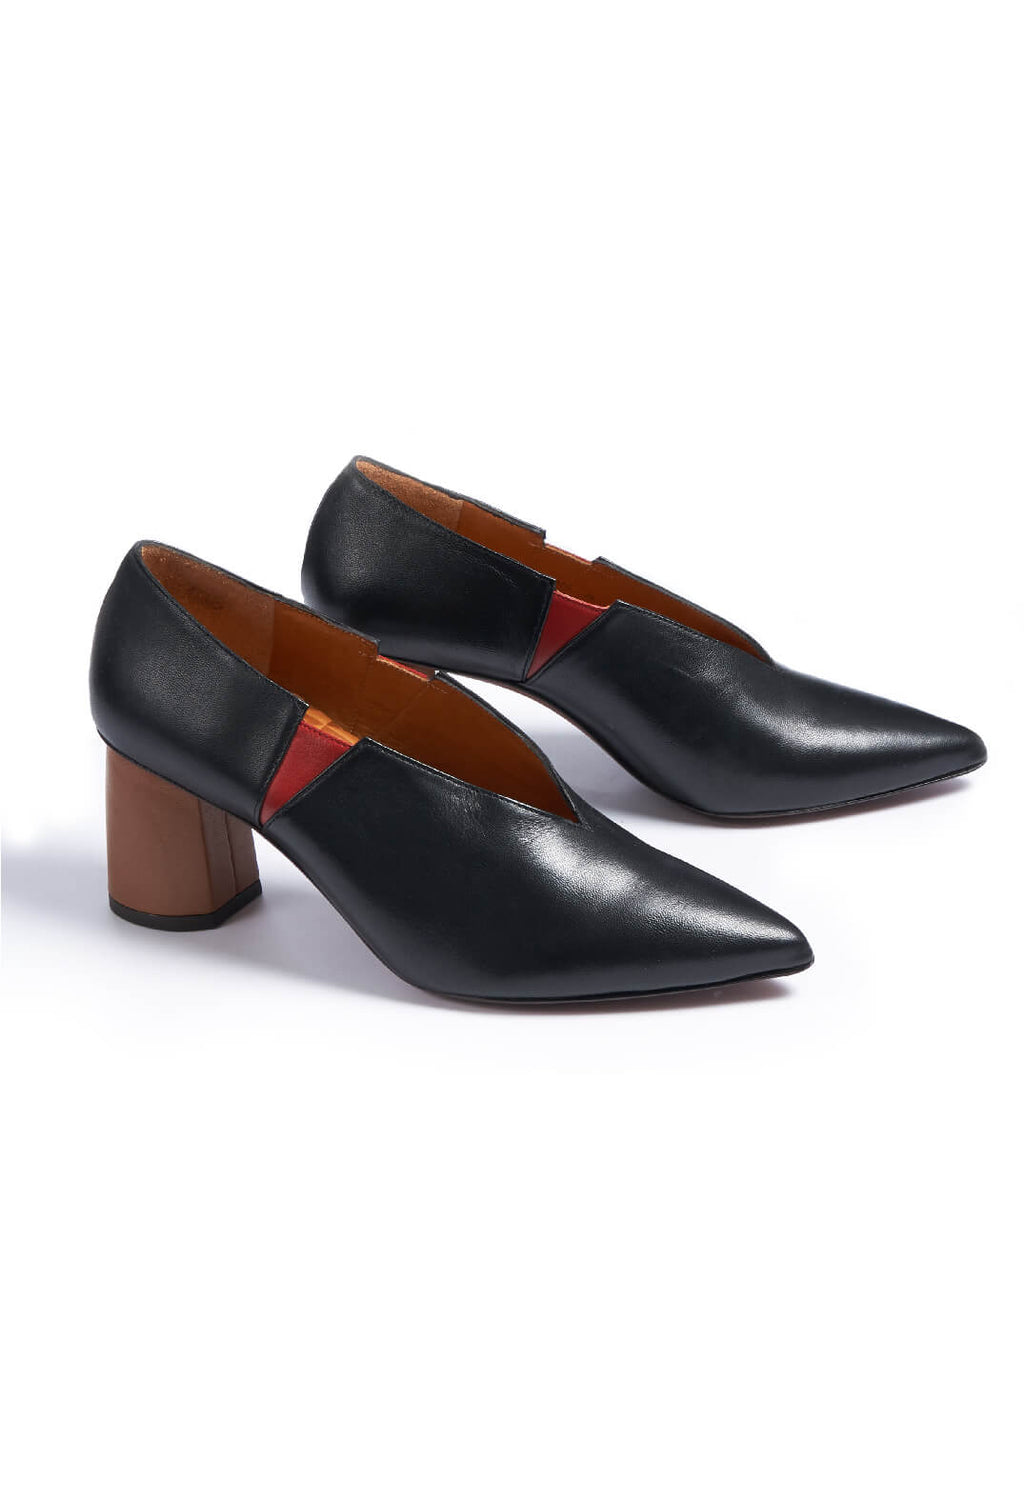 Slip On Heeled Shoes in Goya / Negro / Granate